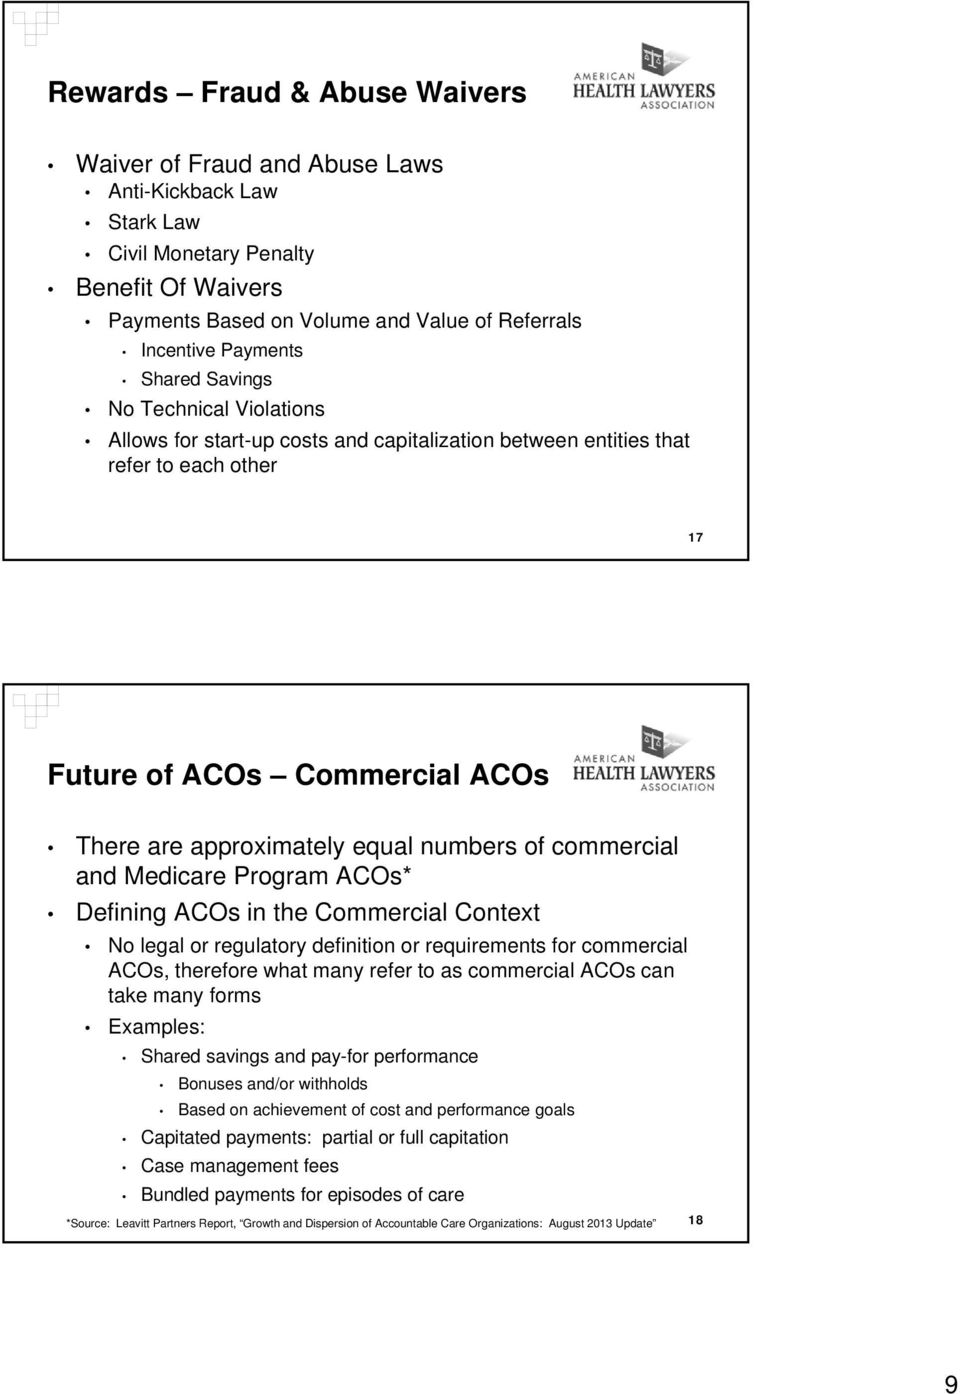 of commercial and Medicare Program ACOs* Defining ACOs in the Commercial Context No legal or regulatory definition or requirements for commercial ACOs, therefore what many refer to as commercial ACOs